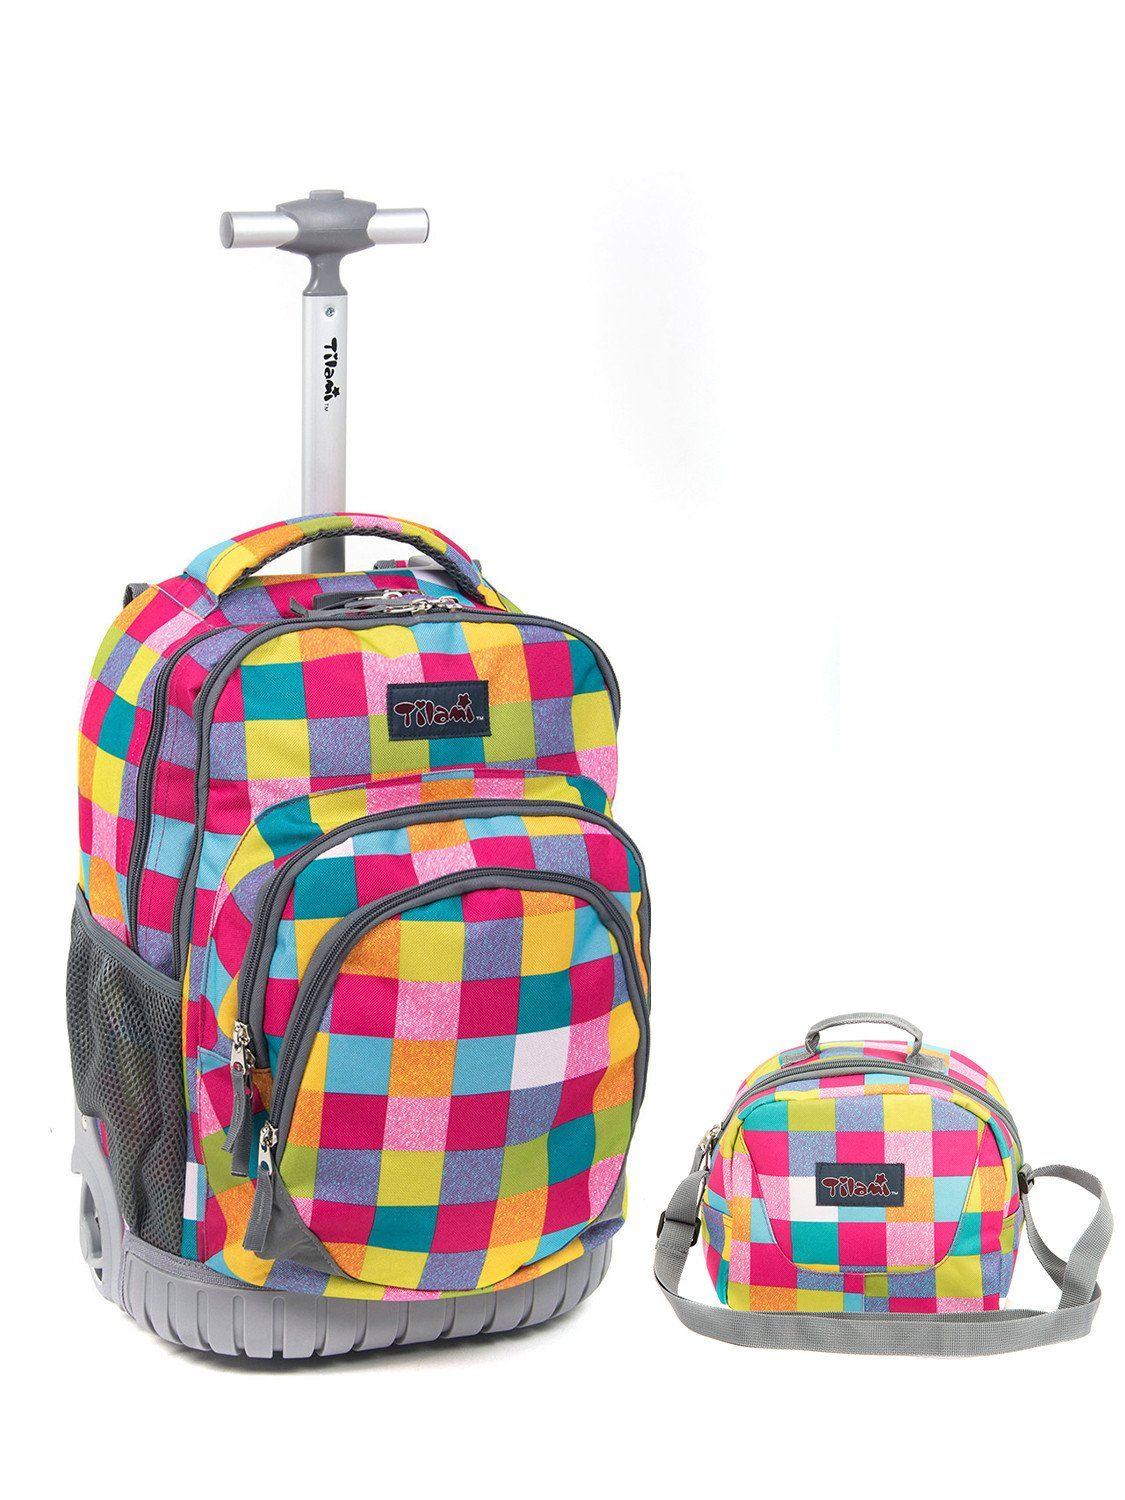 8d527a1e9c65 Tilami 18 Inch Wheeled Rolling Backpack Luggage and Lunch Bag, Red ...